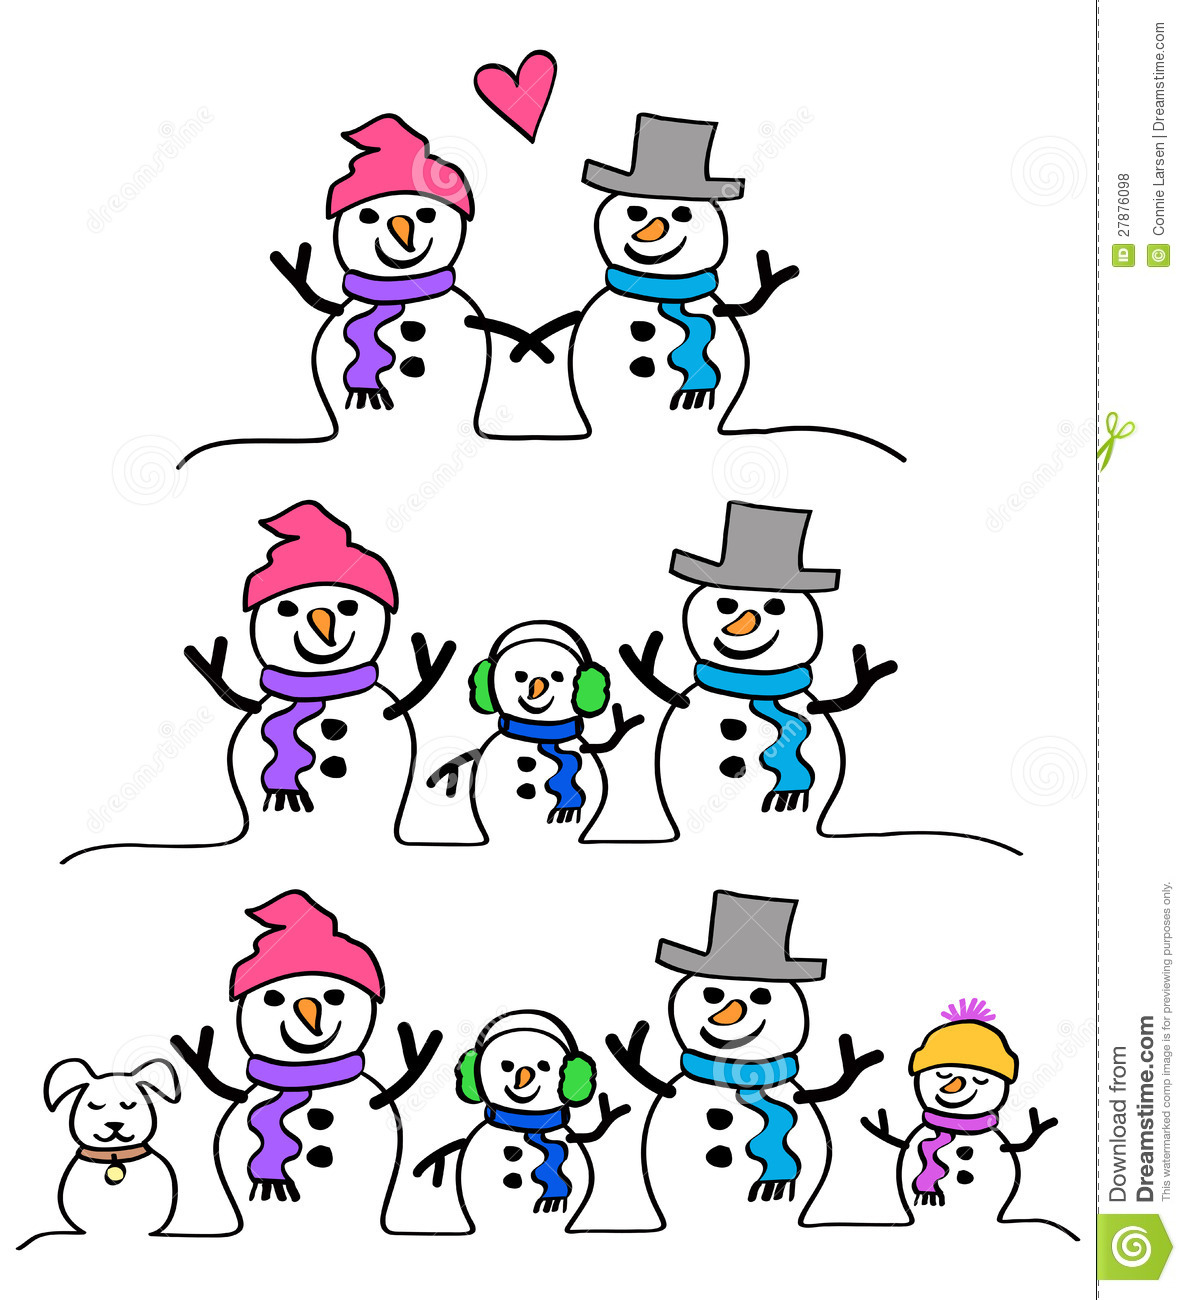 Snowman Couple And Familyeps Royalty Free Stock Photos Image 27876098